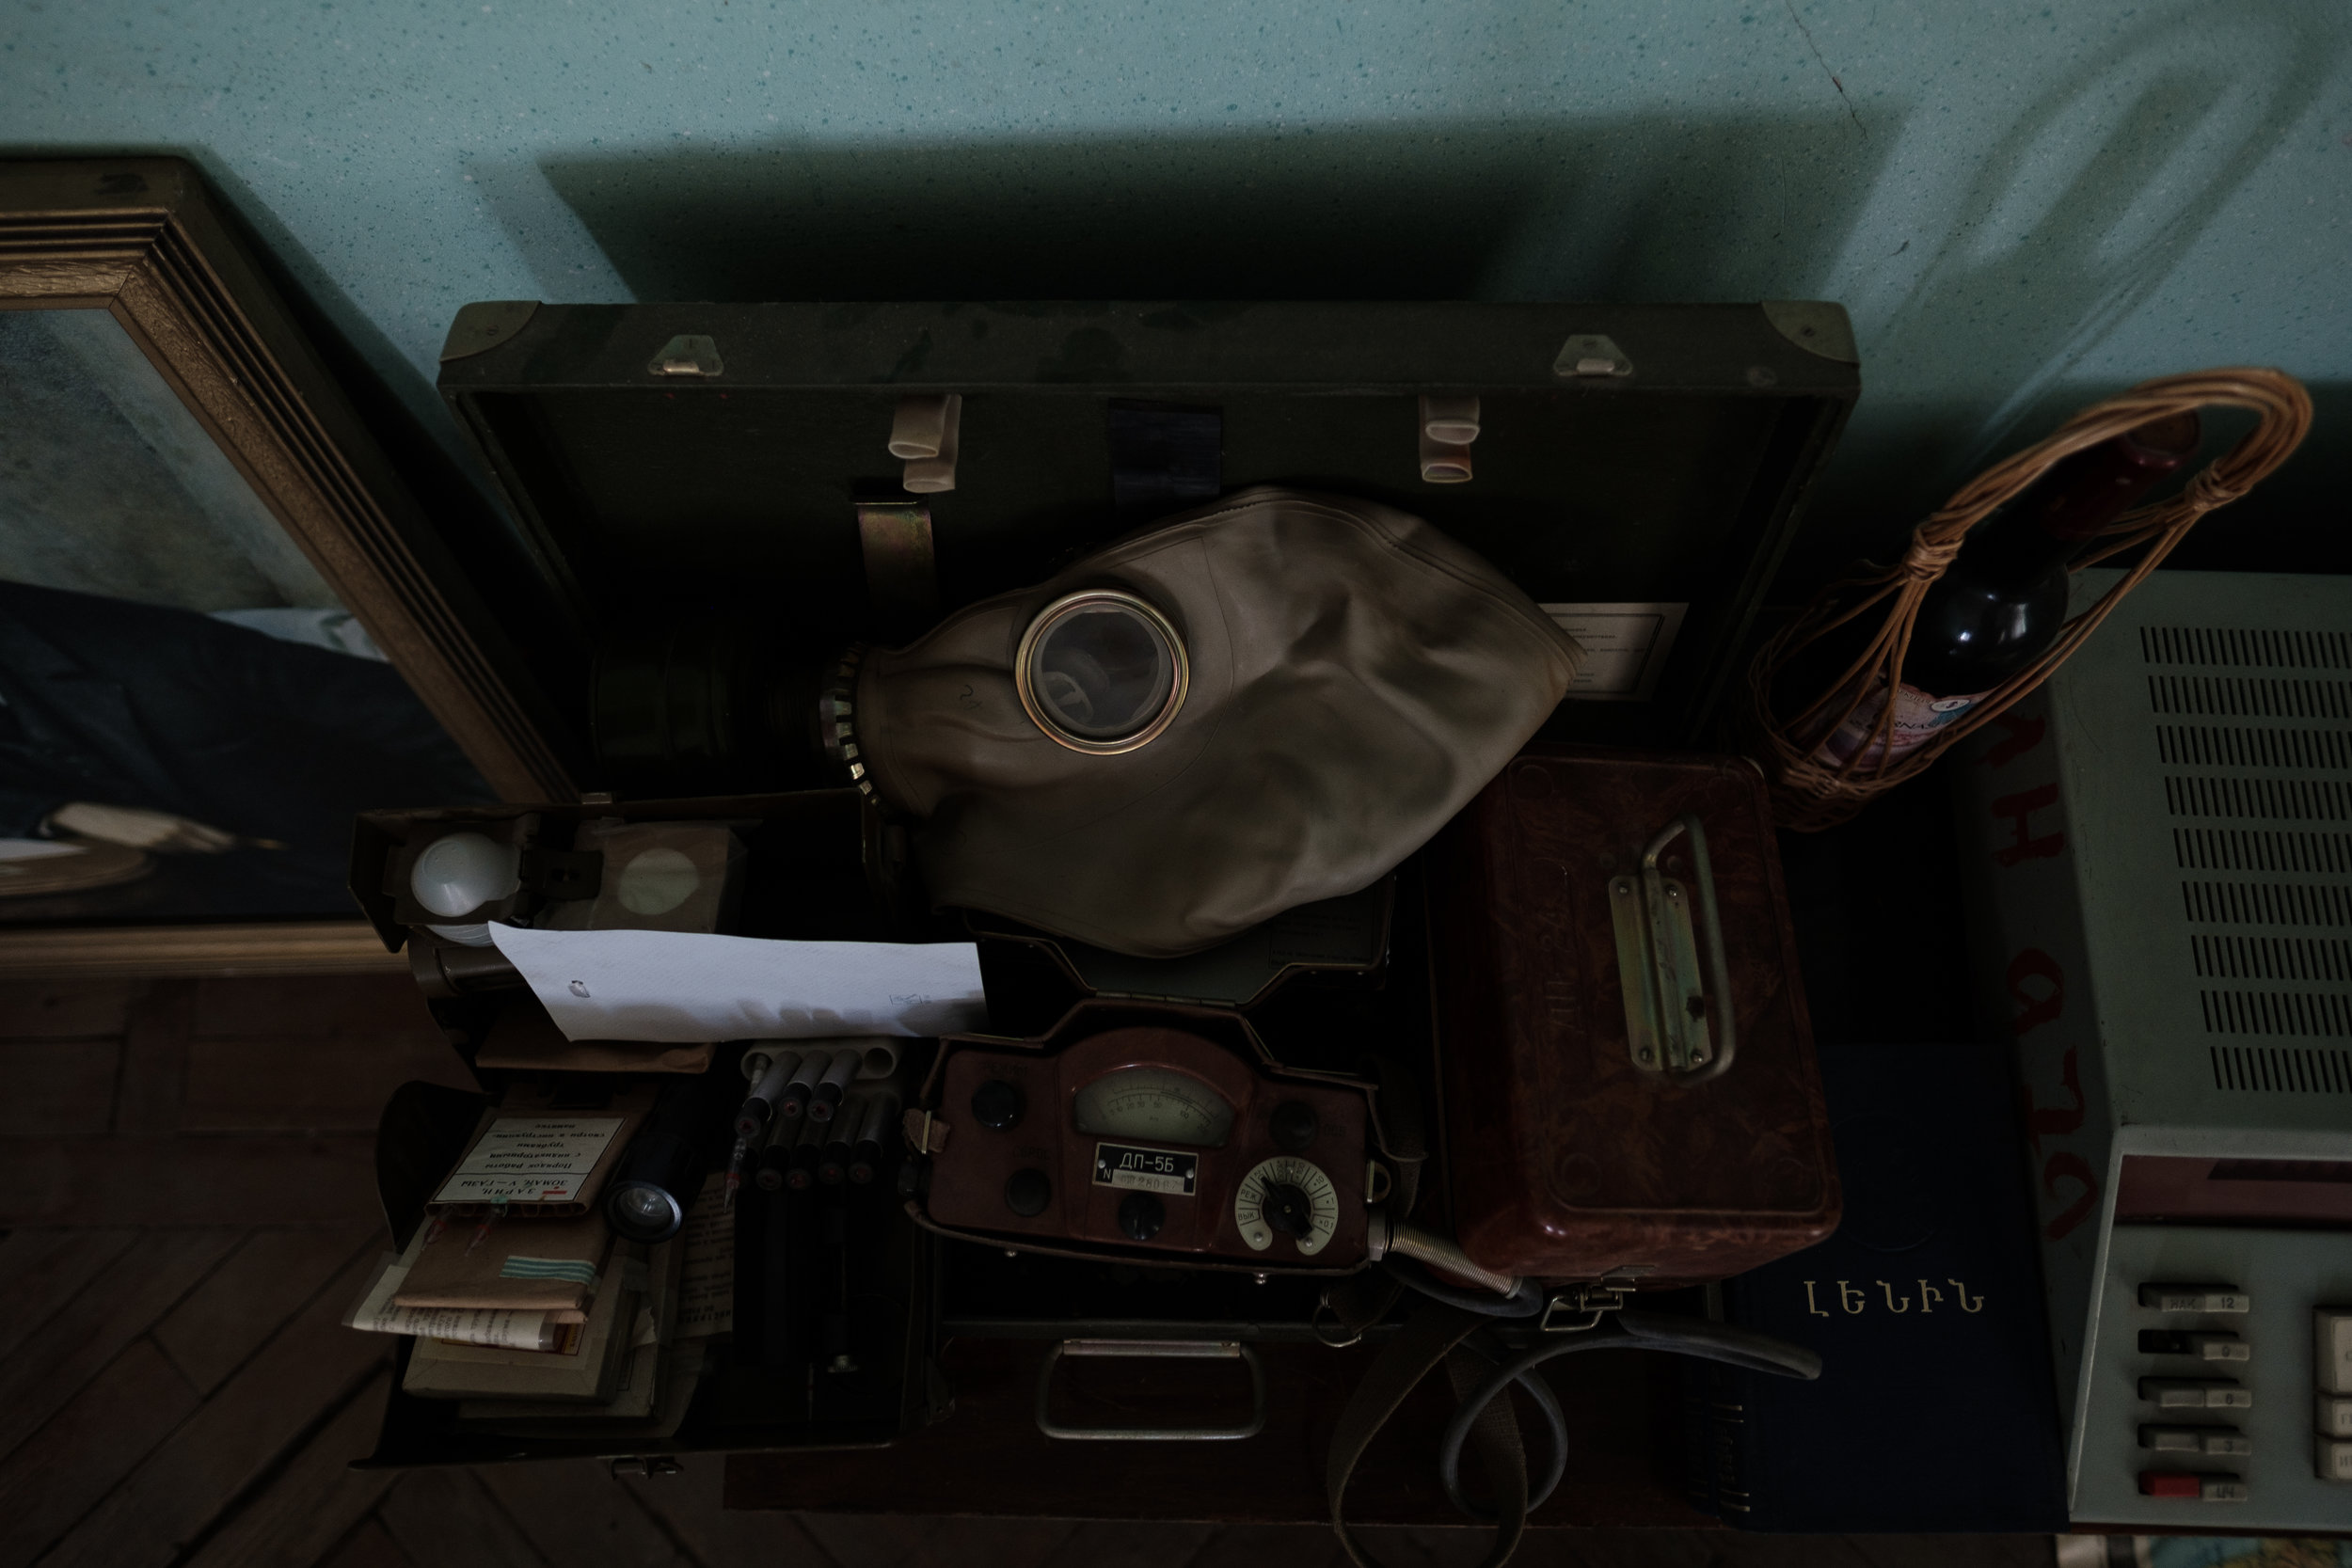 Soviet gas mask and other supplies.